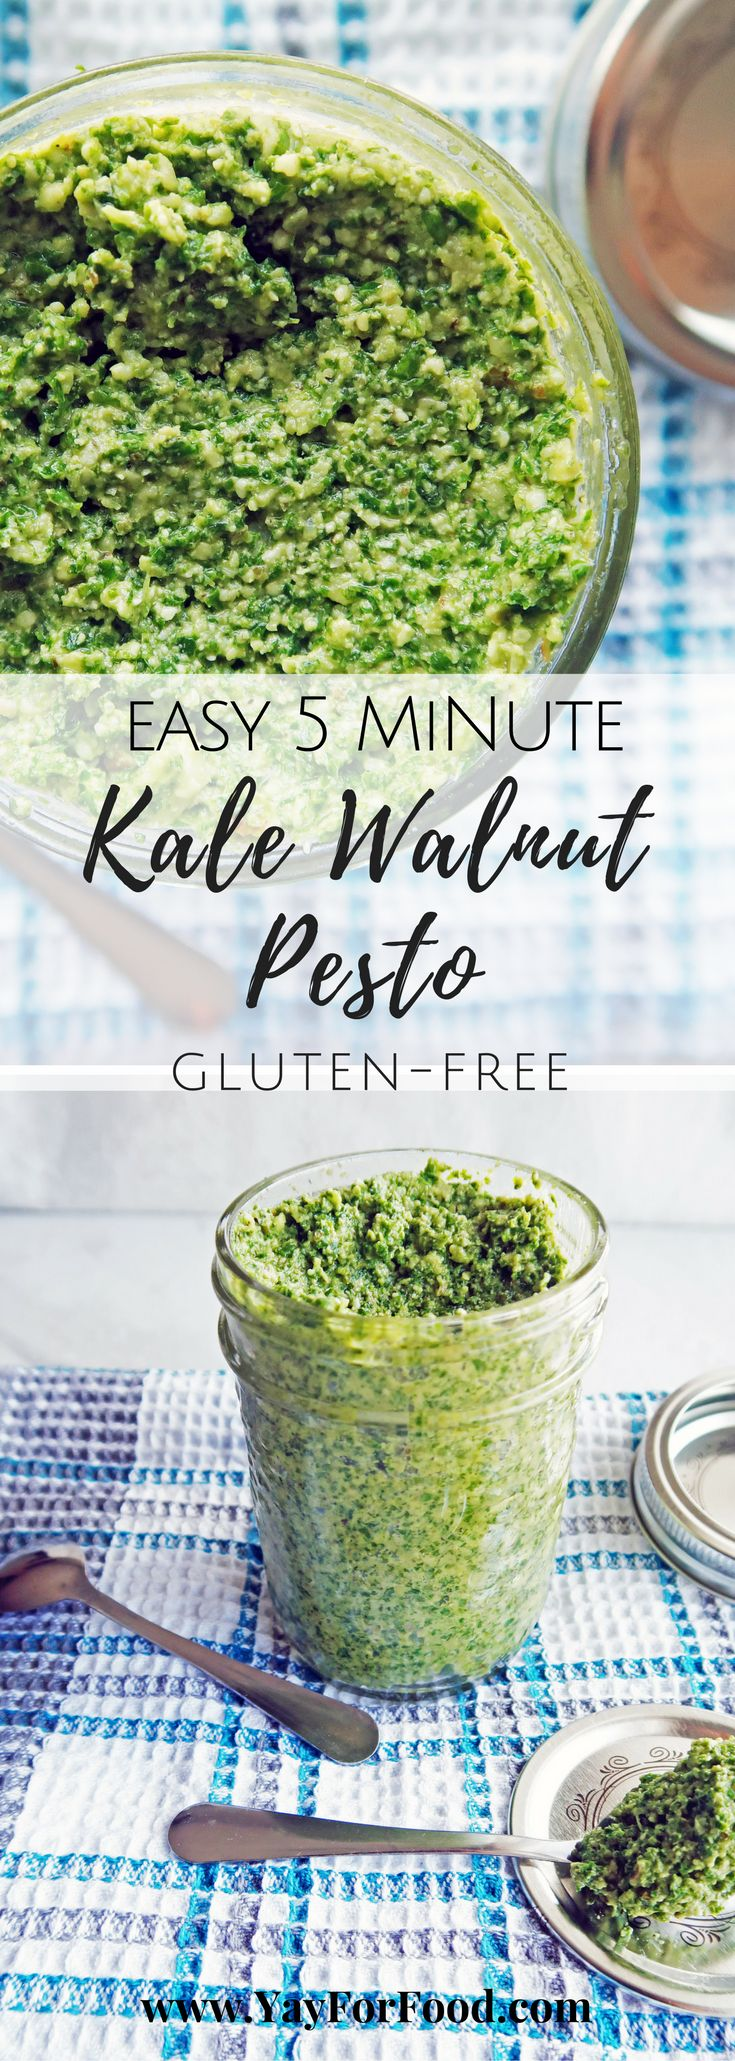 Make this easy delicious Kale Walnut Pesto in 5 minutes. It's so versatile, simple, flavourful and requires minimal ingredients! #vegetarian | #glutenfree | #pesto | #kalepesto | #sauces | #fastrecipes | #easyrecipes